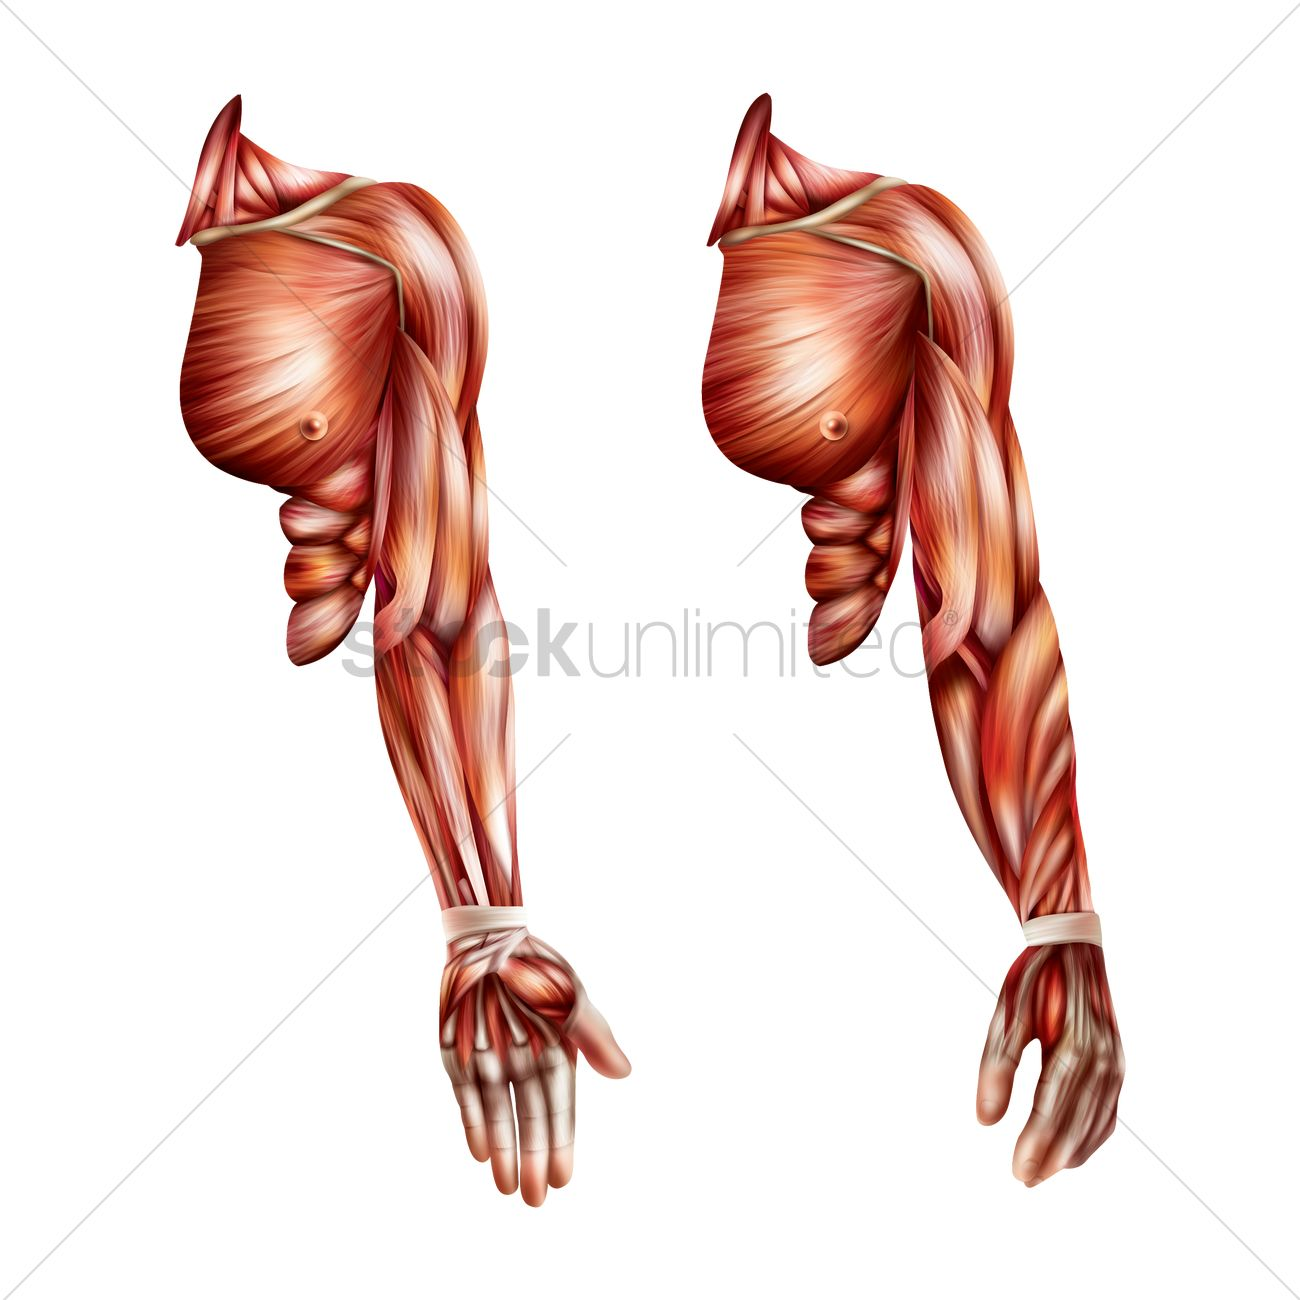 Hand muscles Vector Image - 1814975 | StockUnlimited